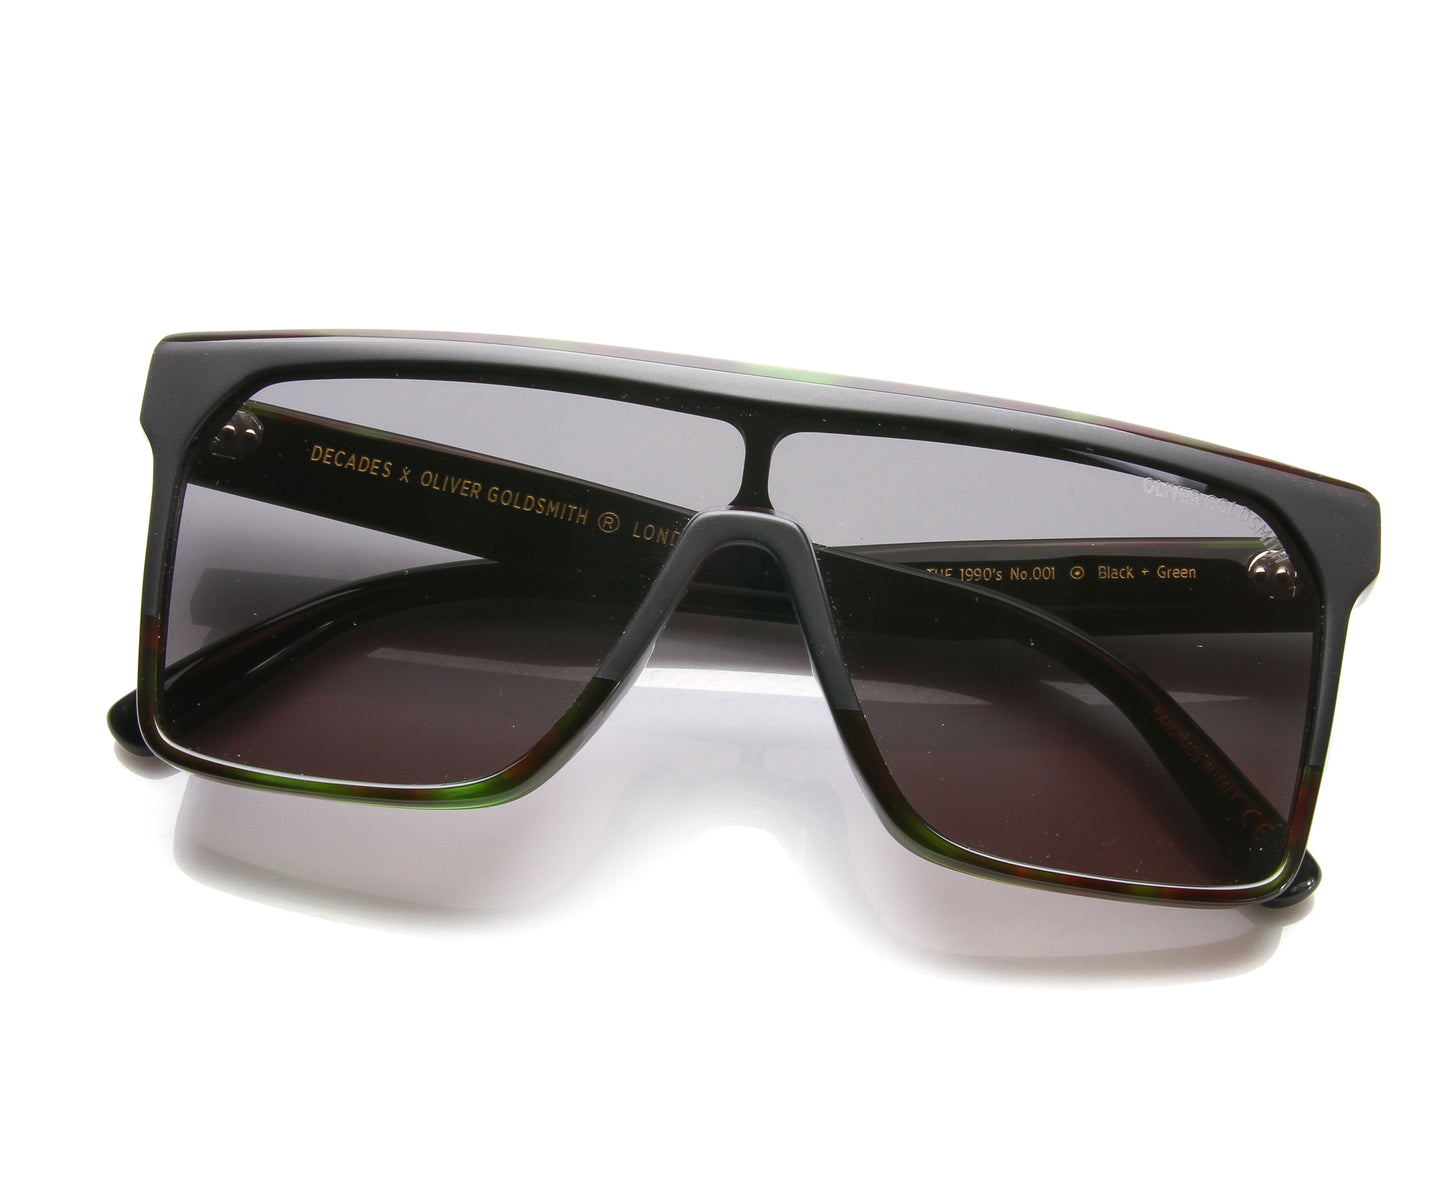 Oliver Goldsmith 1990's 001 1 (Black / Green), oliver Goldsmith , glasses frames, eyeglasses online, eyeglass frames, mens glasses, womens glasses, buy glasses online, designer eyeglasses, vintage sunglasses, retro sunglasses, vintage glasses, sunglass, eyeglass, glasses, lens, vintage frames company, vf